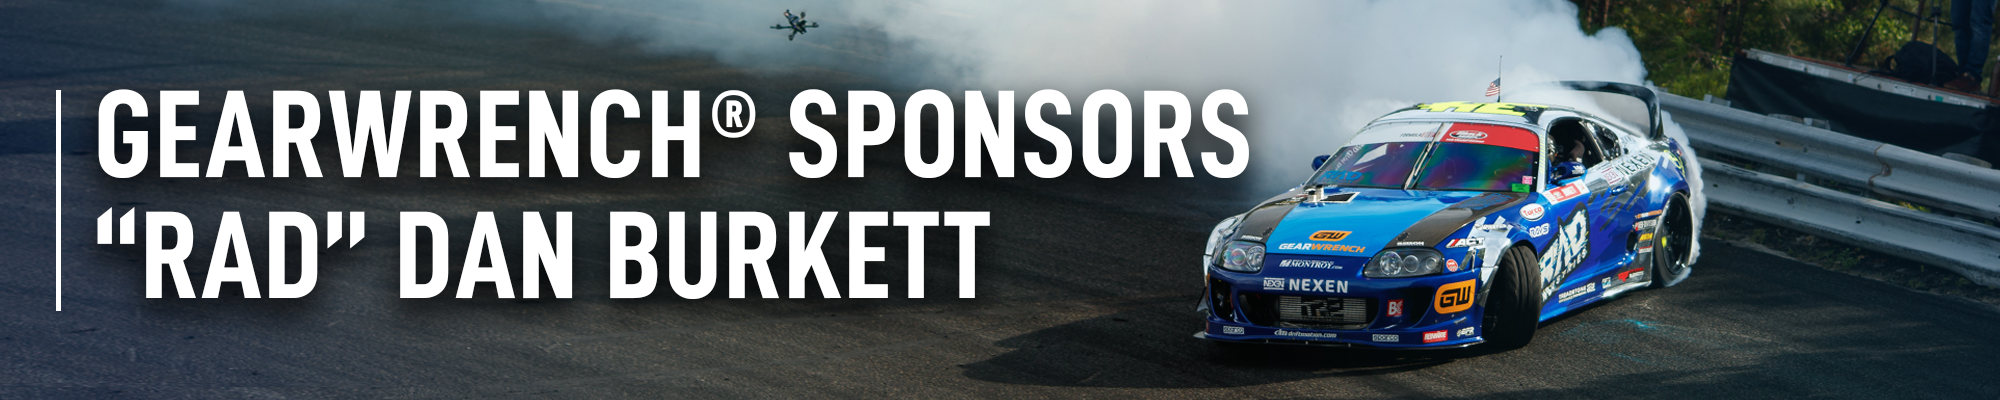 "GEARWRENCH® Enters Formula Drift as Sponsor for Driver ""Rad"" Dan Burkett"